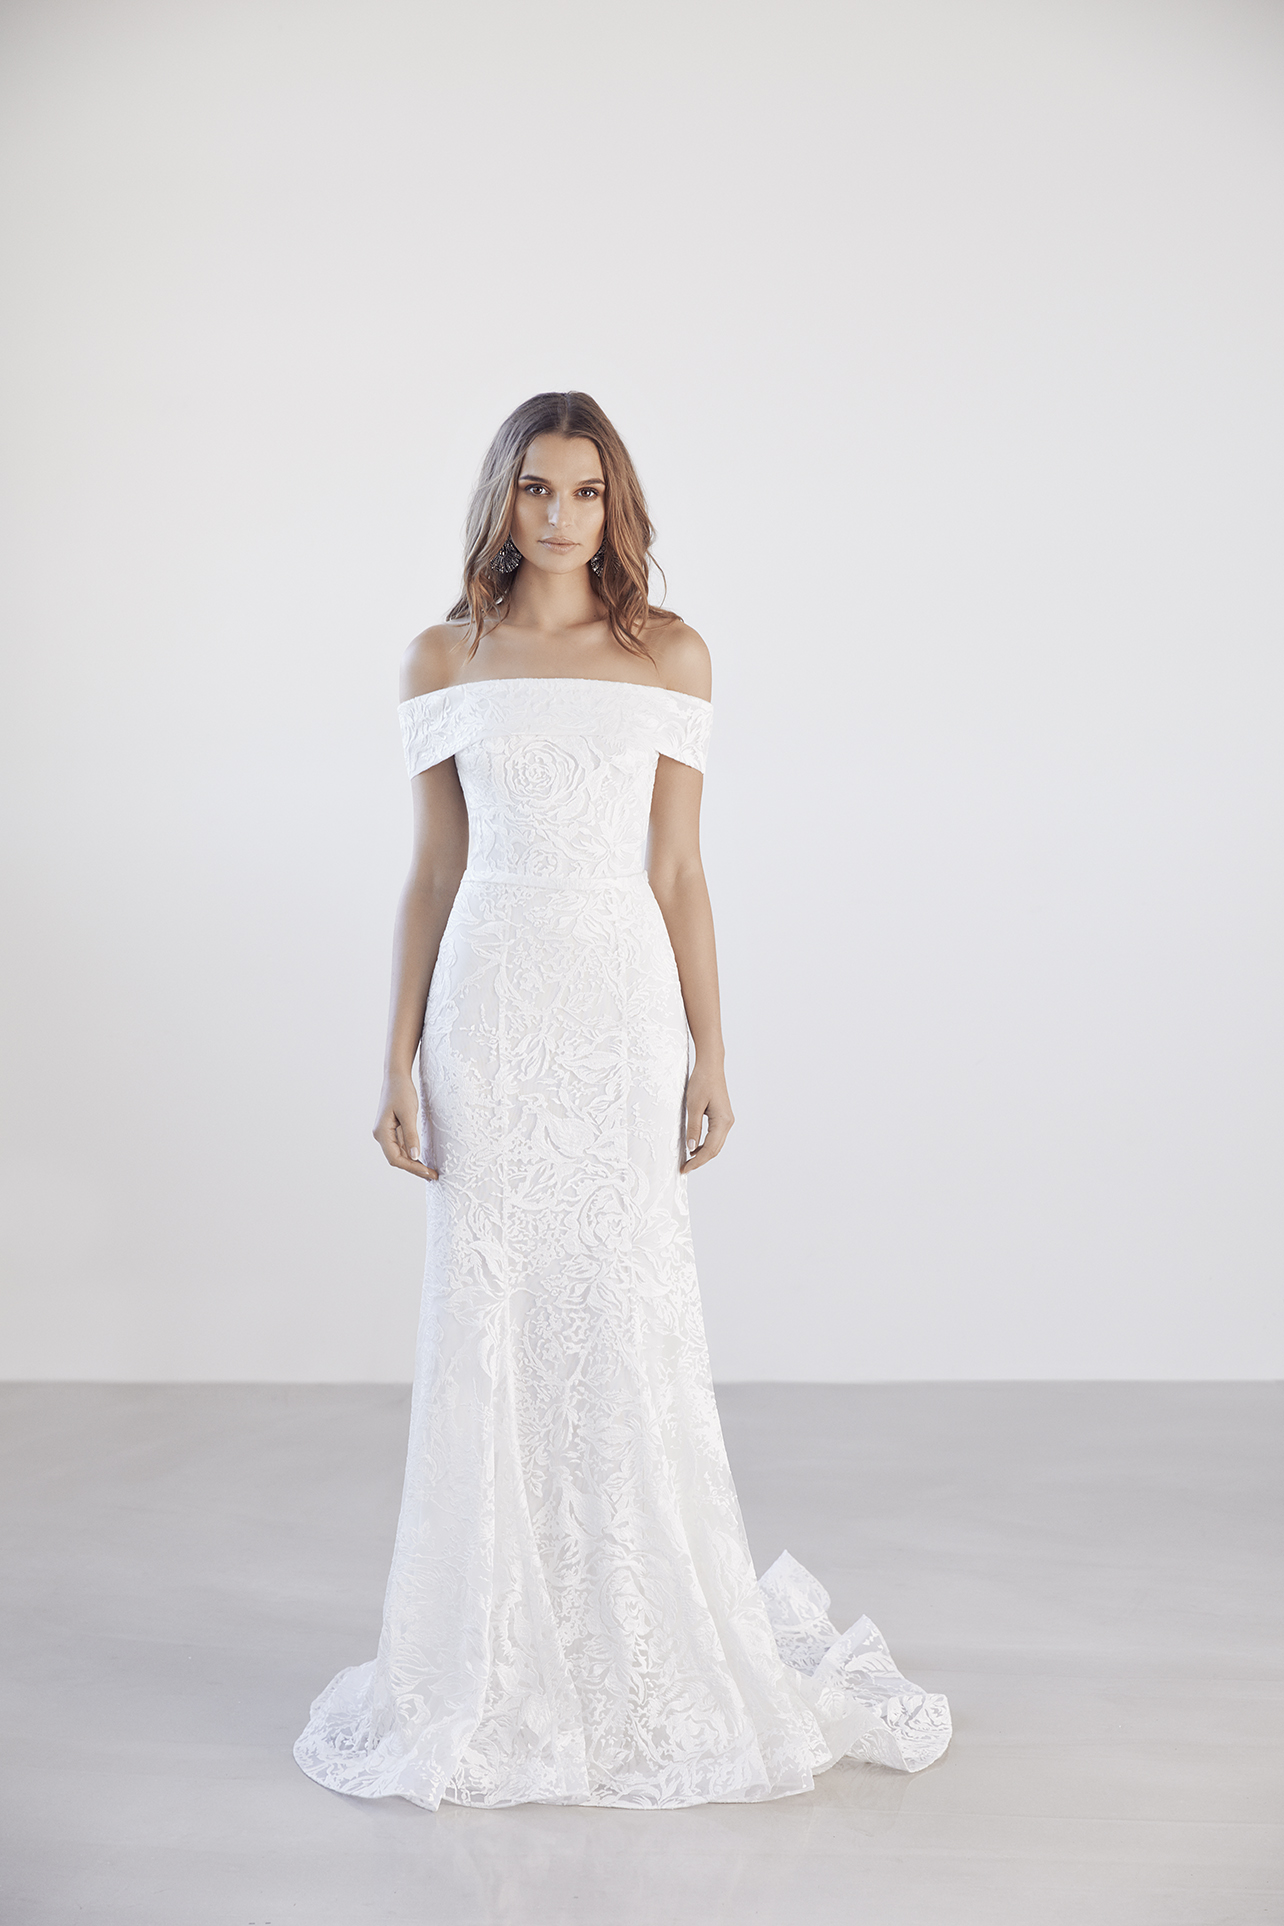 Off The Shoulder Straight Neckline Lace Fit And Flare Wedding Dress